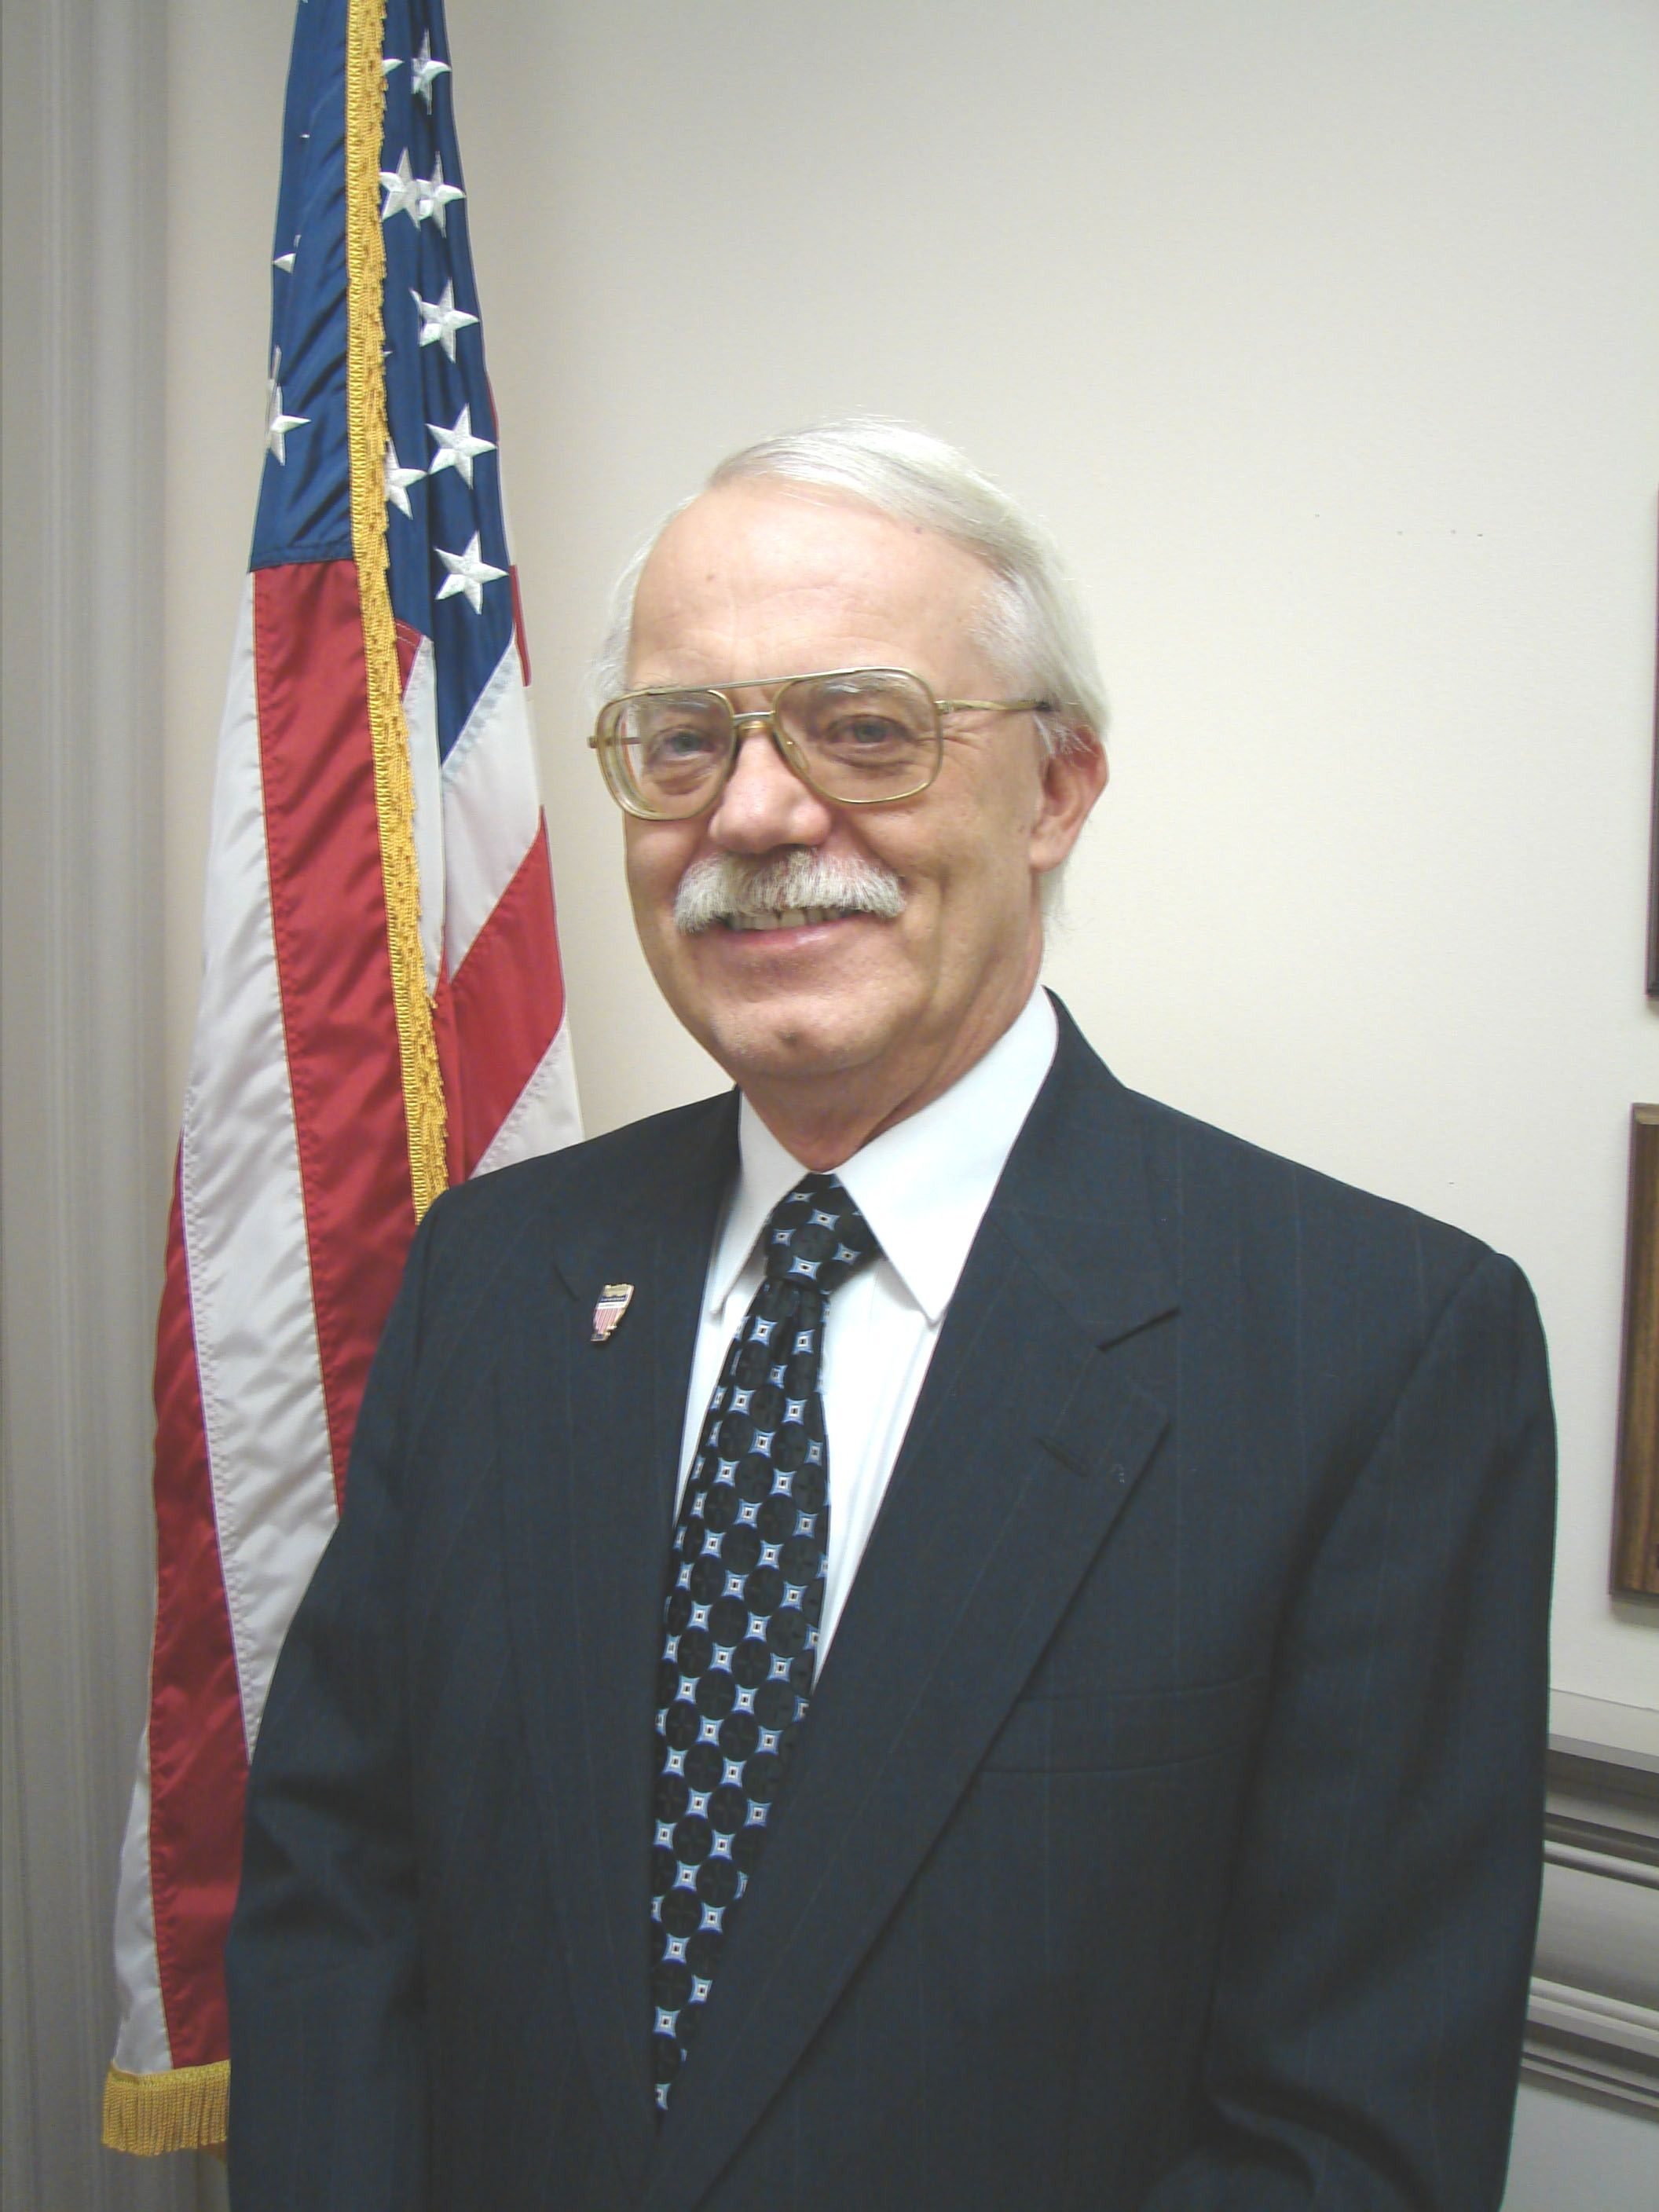 City Administrator Edward A. Barrett